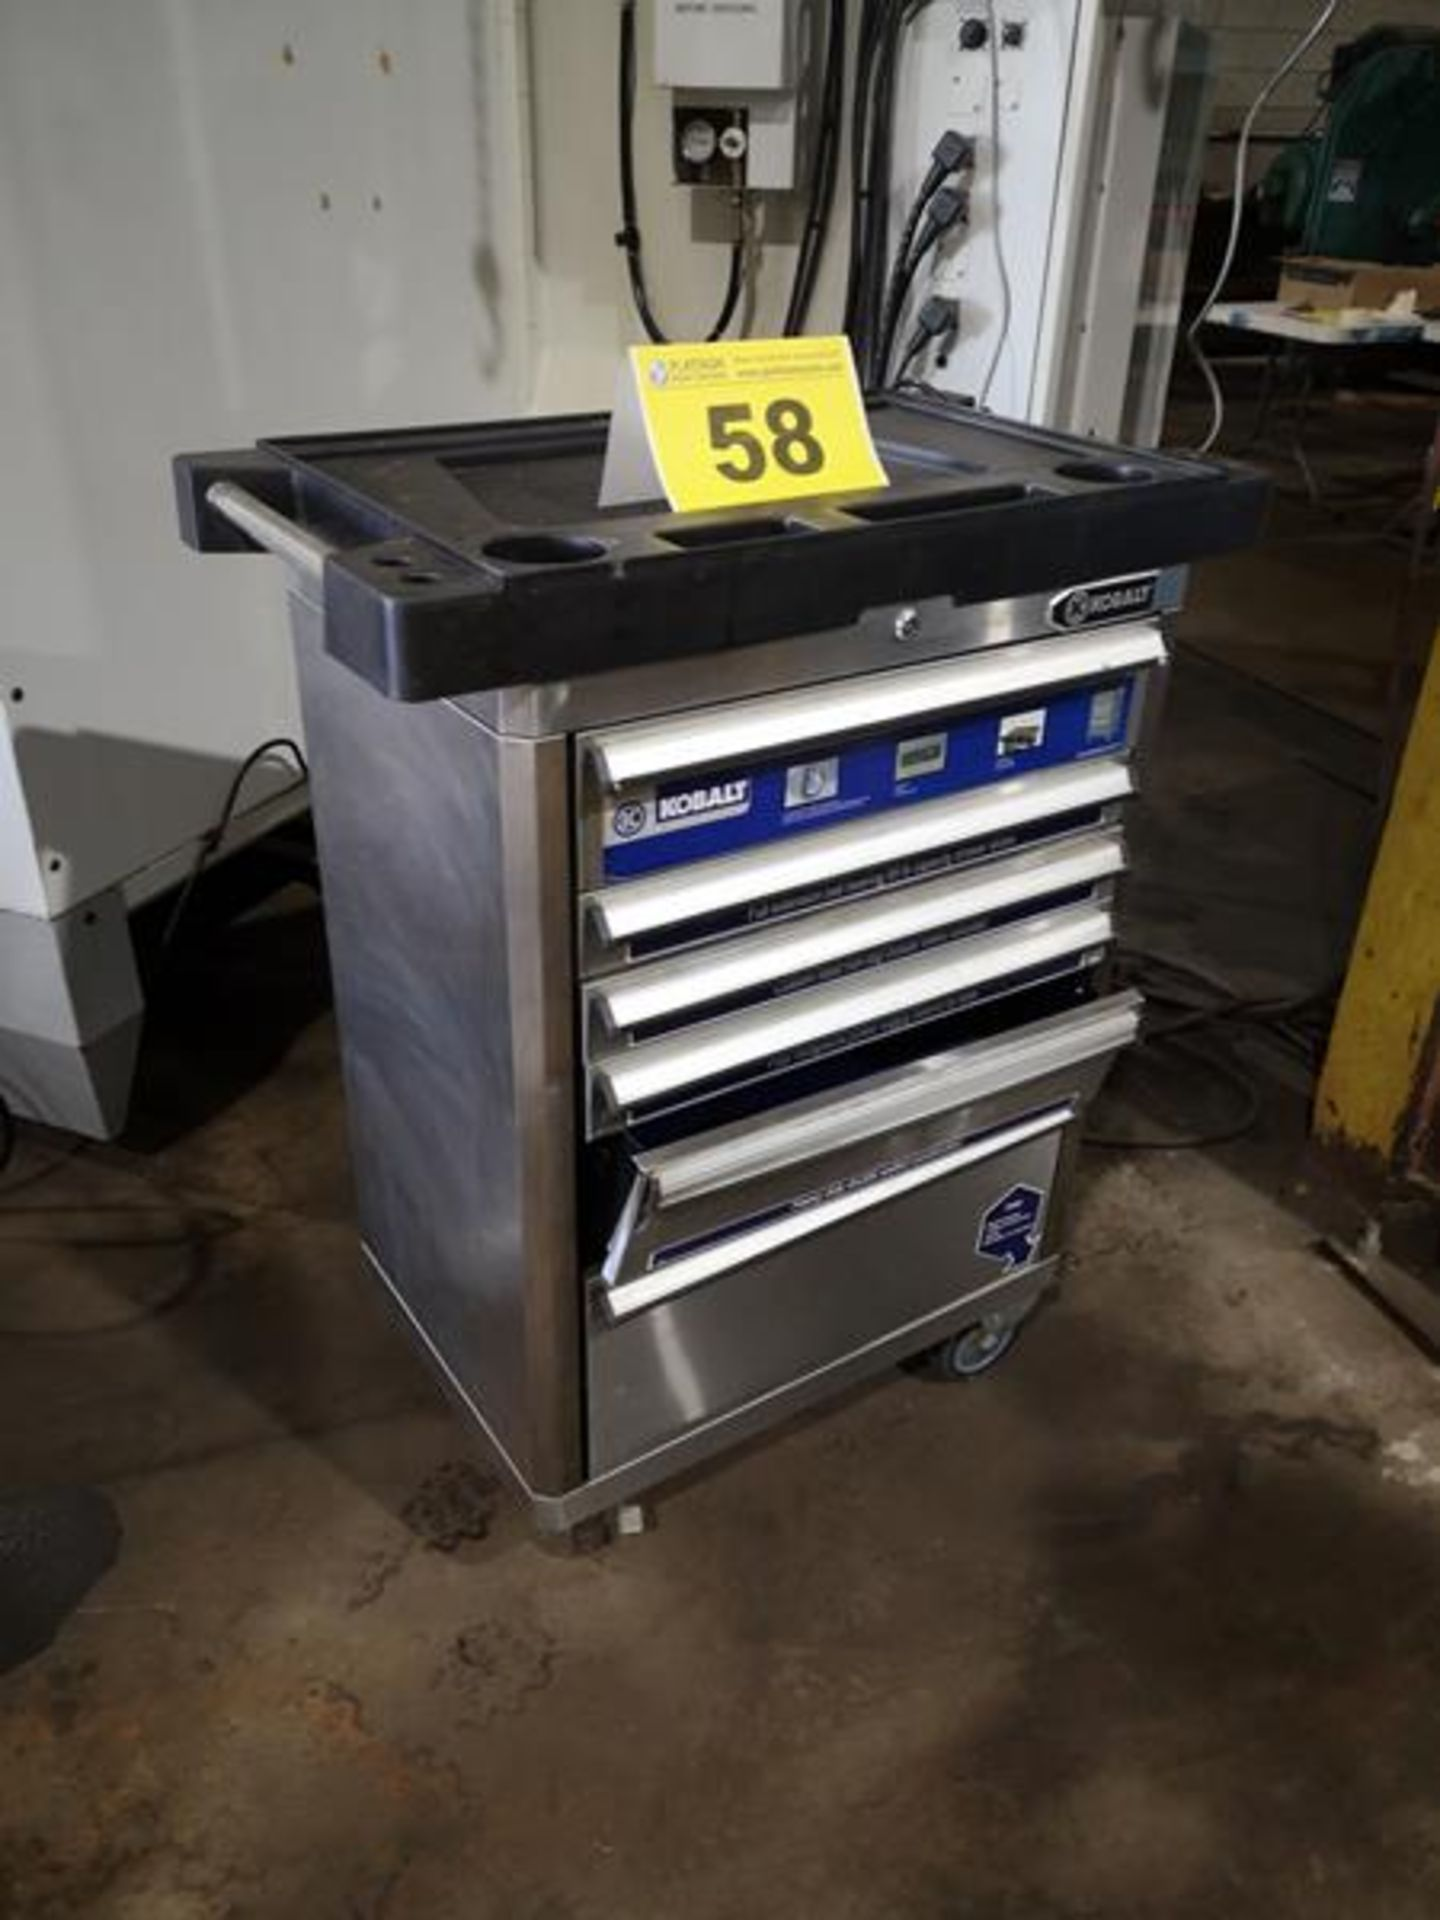 KOBALT, 6 DRAWER TOOL CABINET ON CASTERS( 1 DRAWER REQUIRES REPAIR) - Image 2 of 2